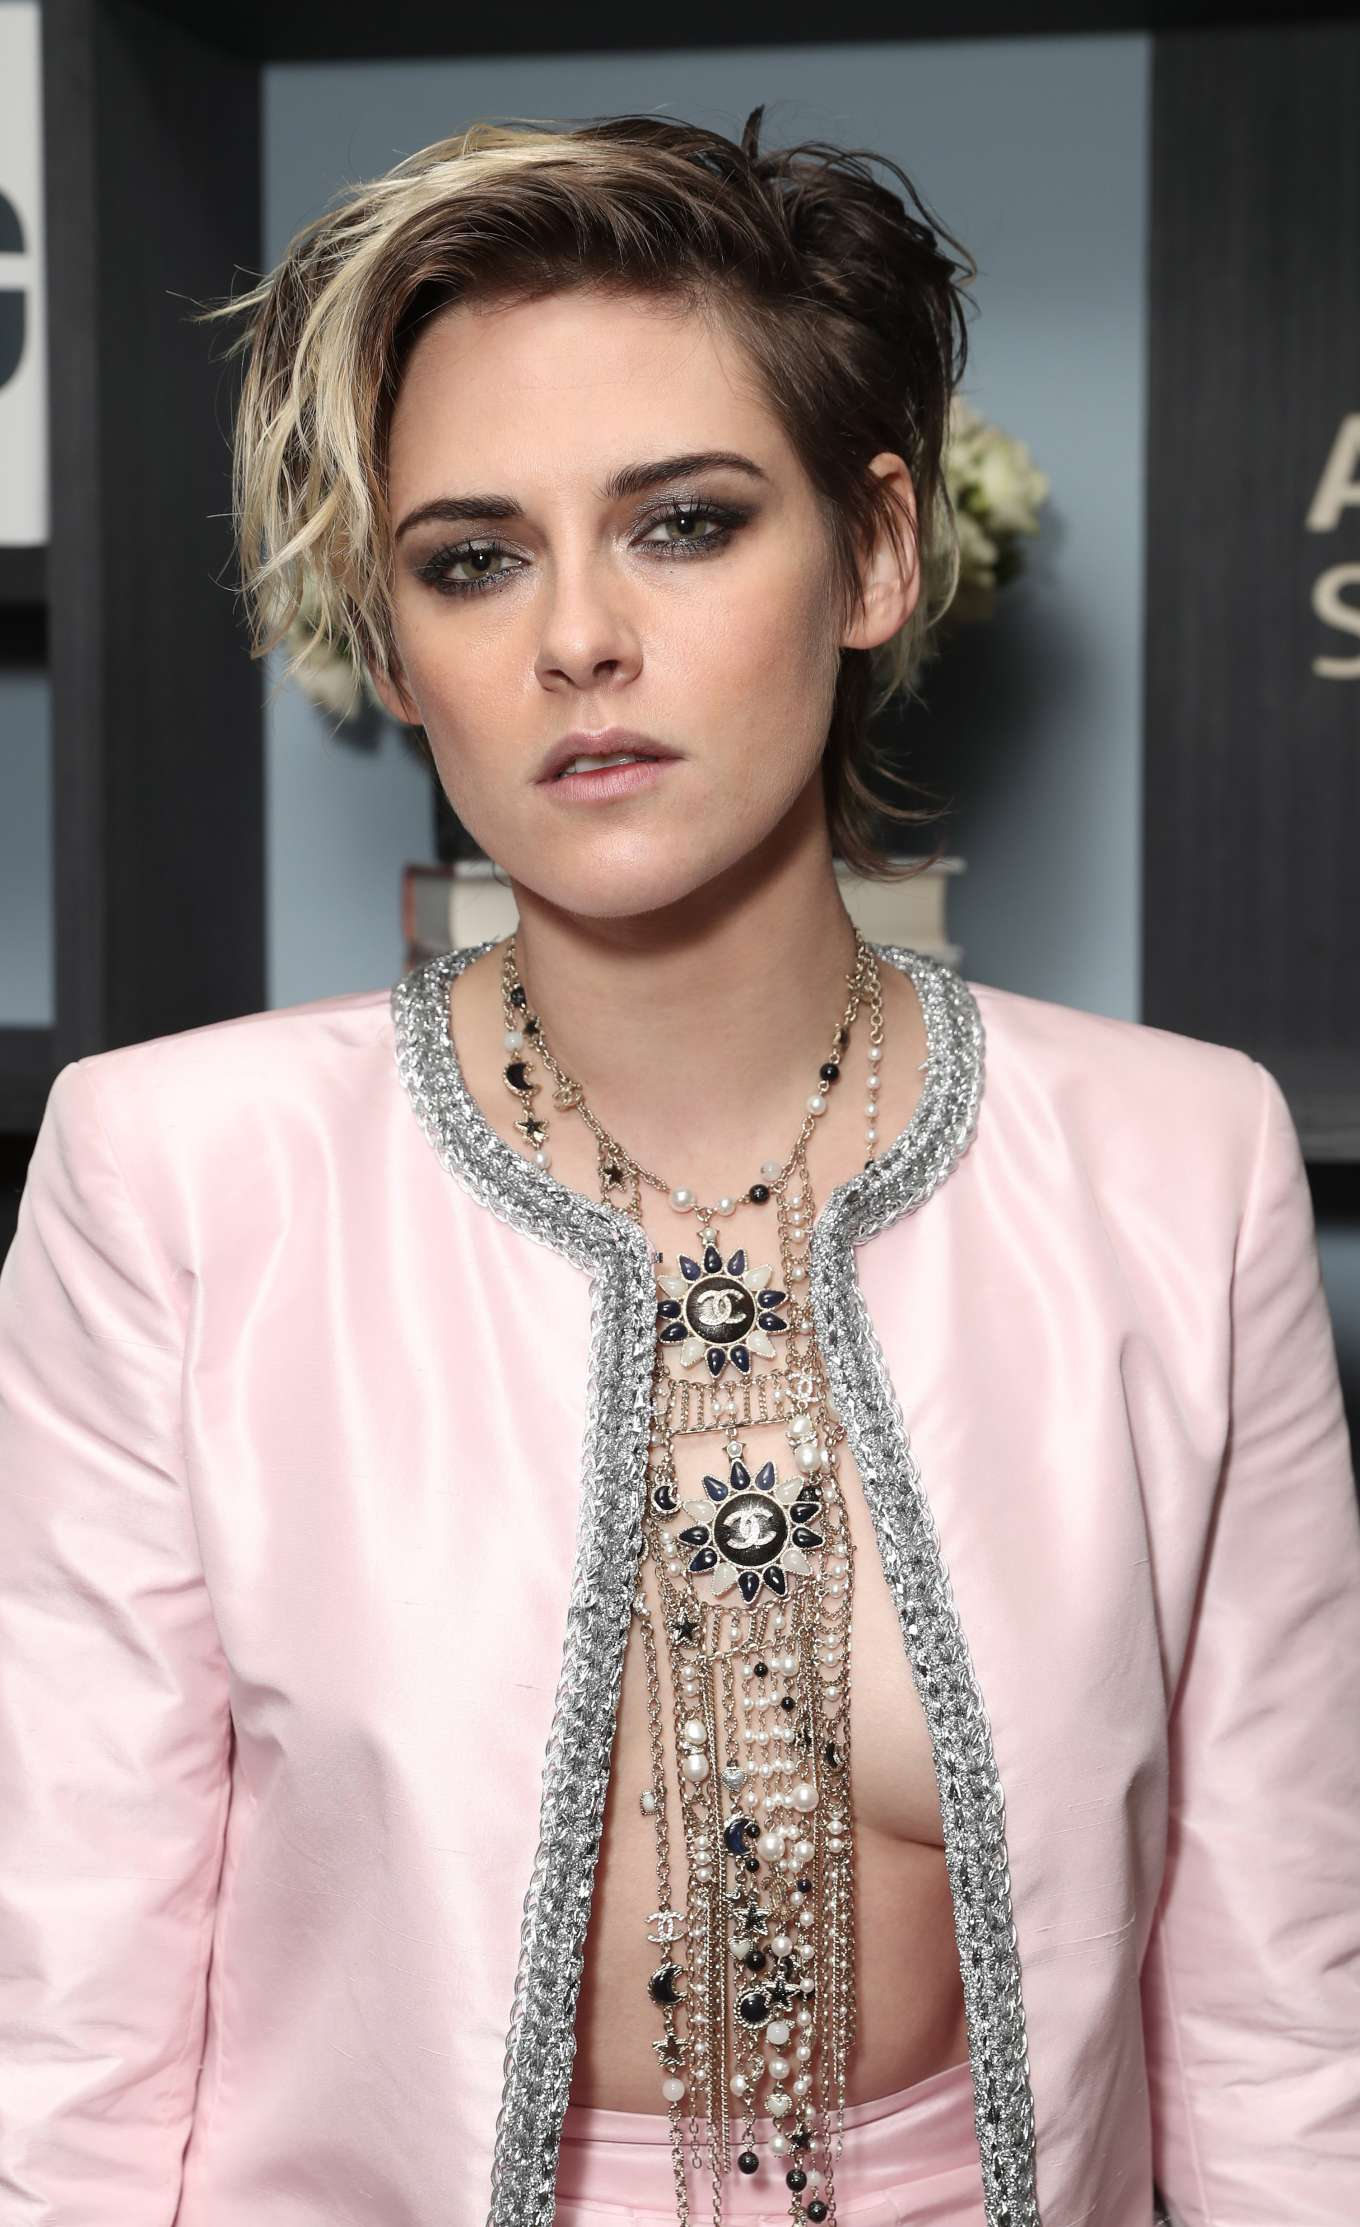 Kristen Stewart - Posing at 'Seberg' Special Film Screening in Los Angeles